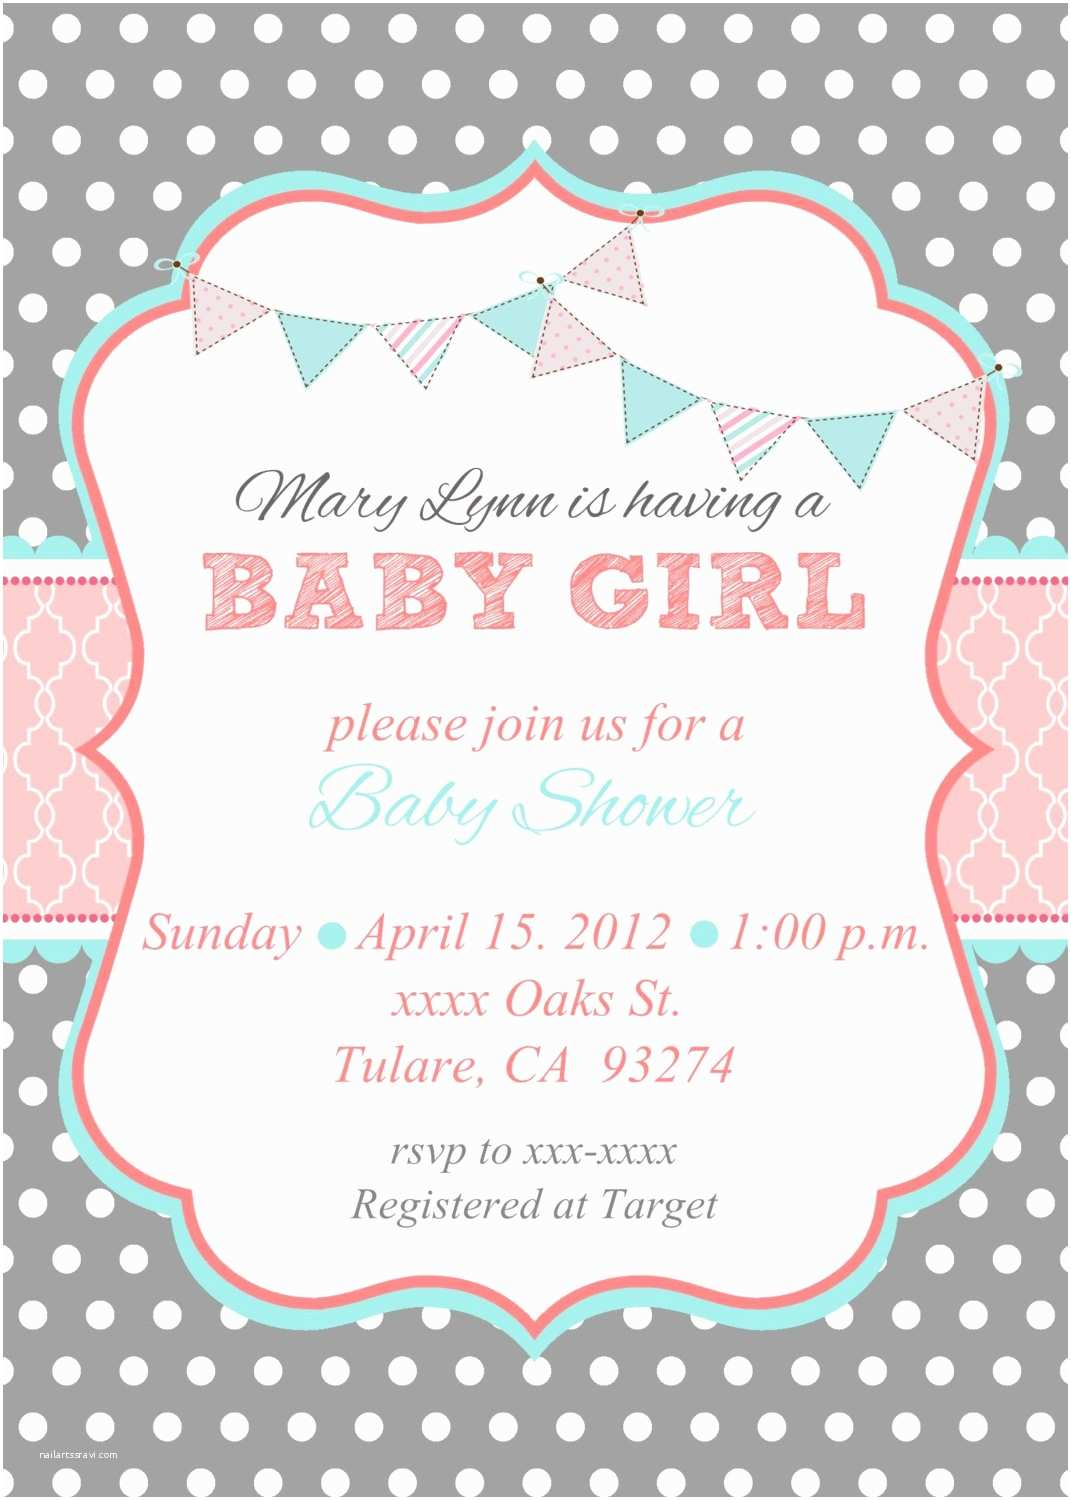 Email Baby Shower Invitations Baby Shower Email Invitations Baby Shower